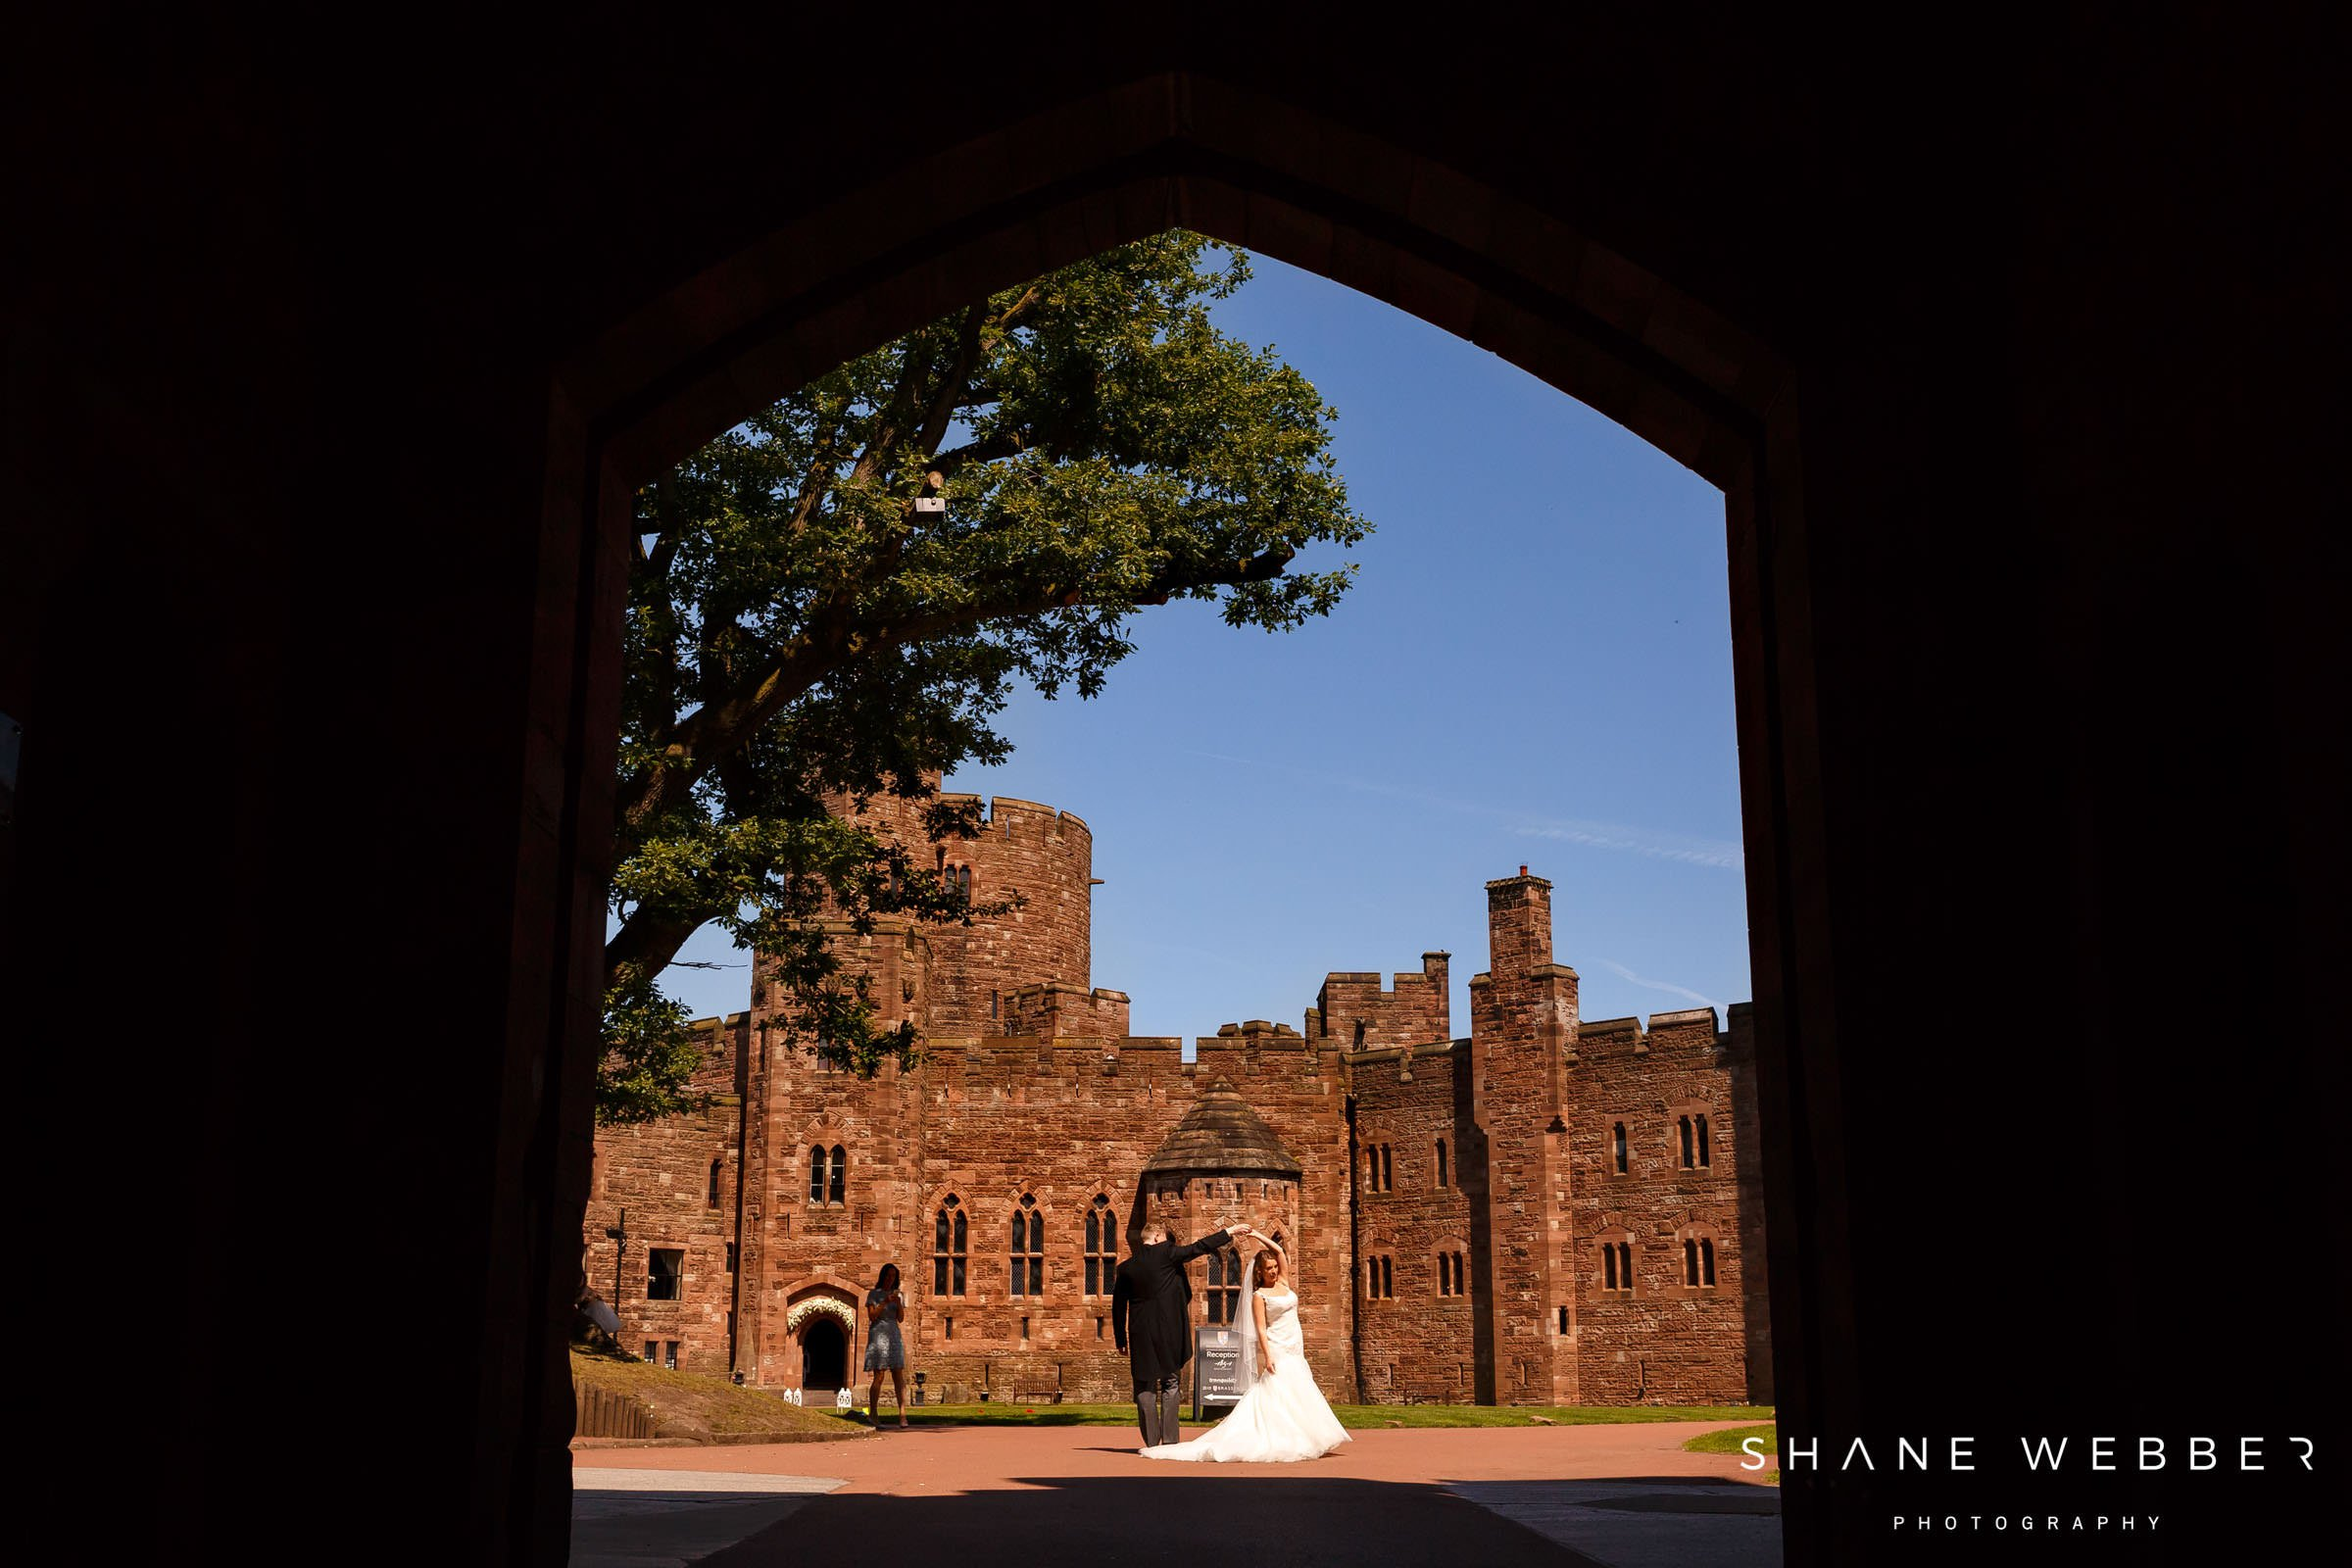 Peckforton Castle Ceremony Room Bride And Groom At